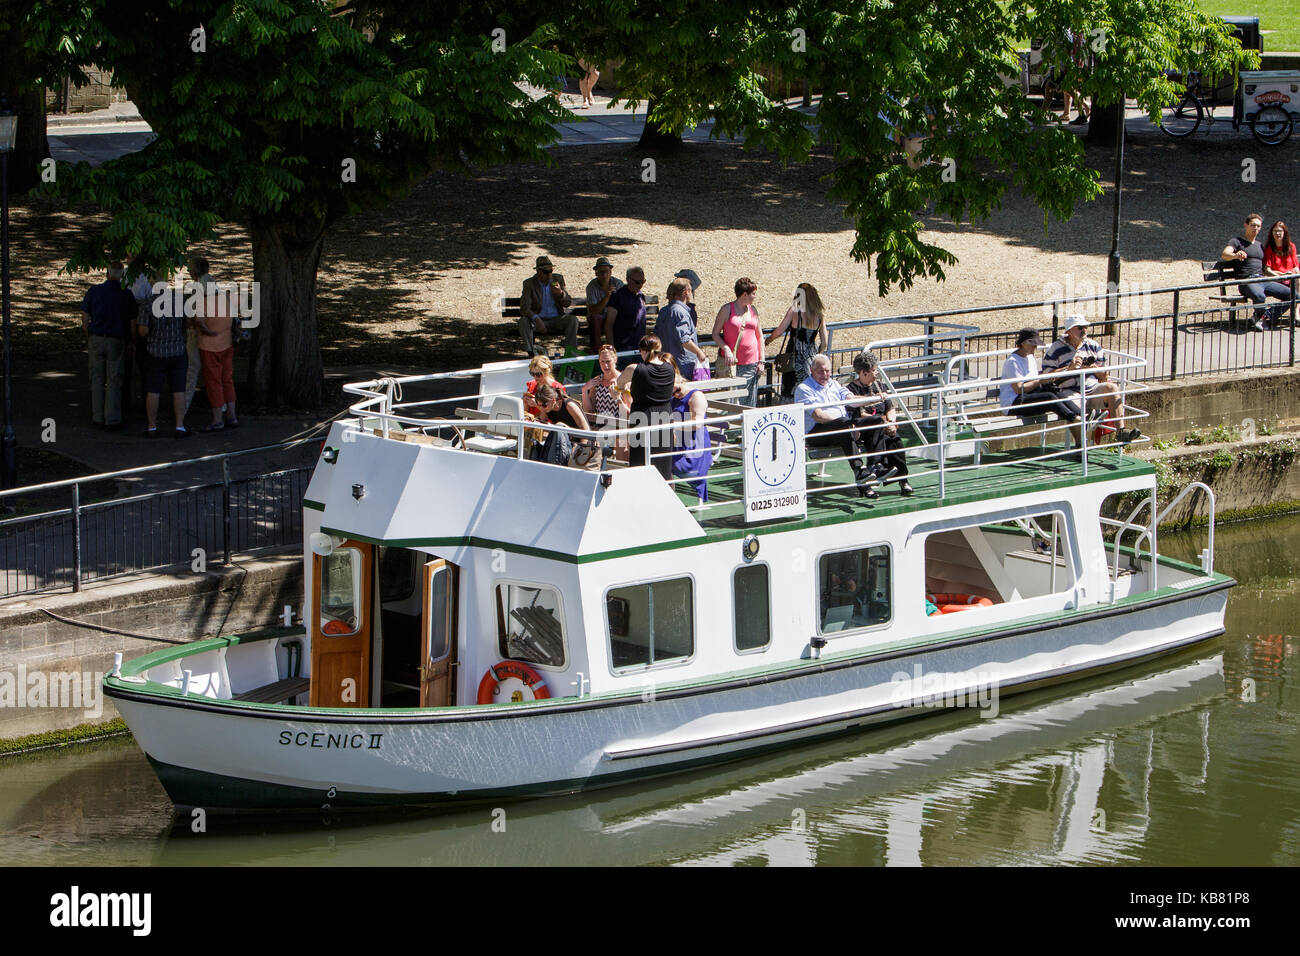 Tourists are pictured sitting in a sightseeing river cruise boat as it prepares to depart and travel along the river - Stock Image